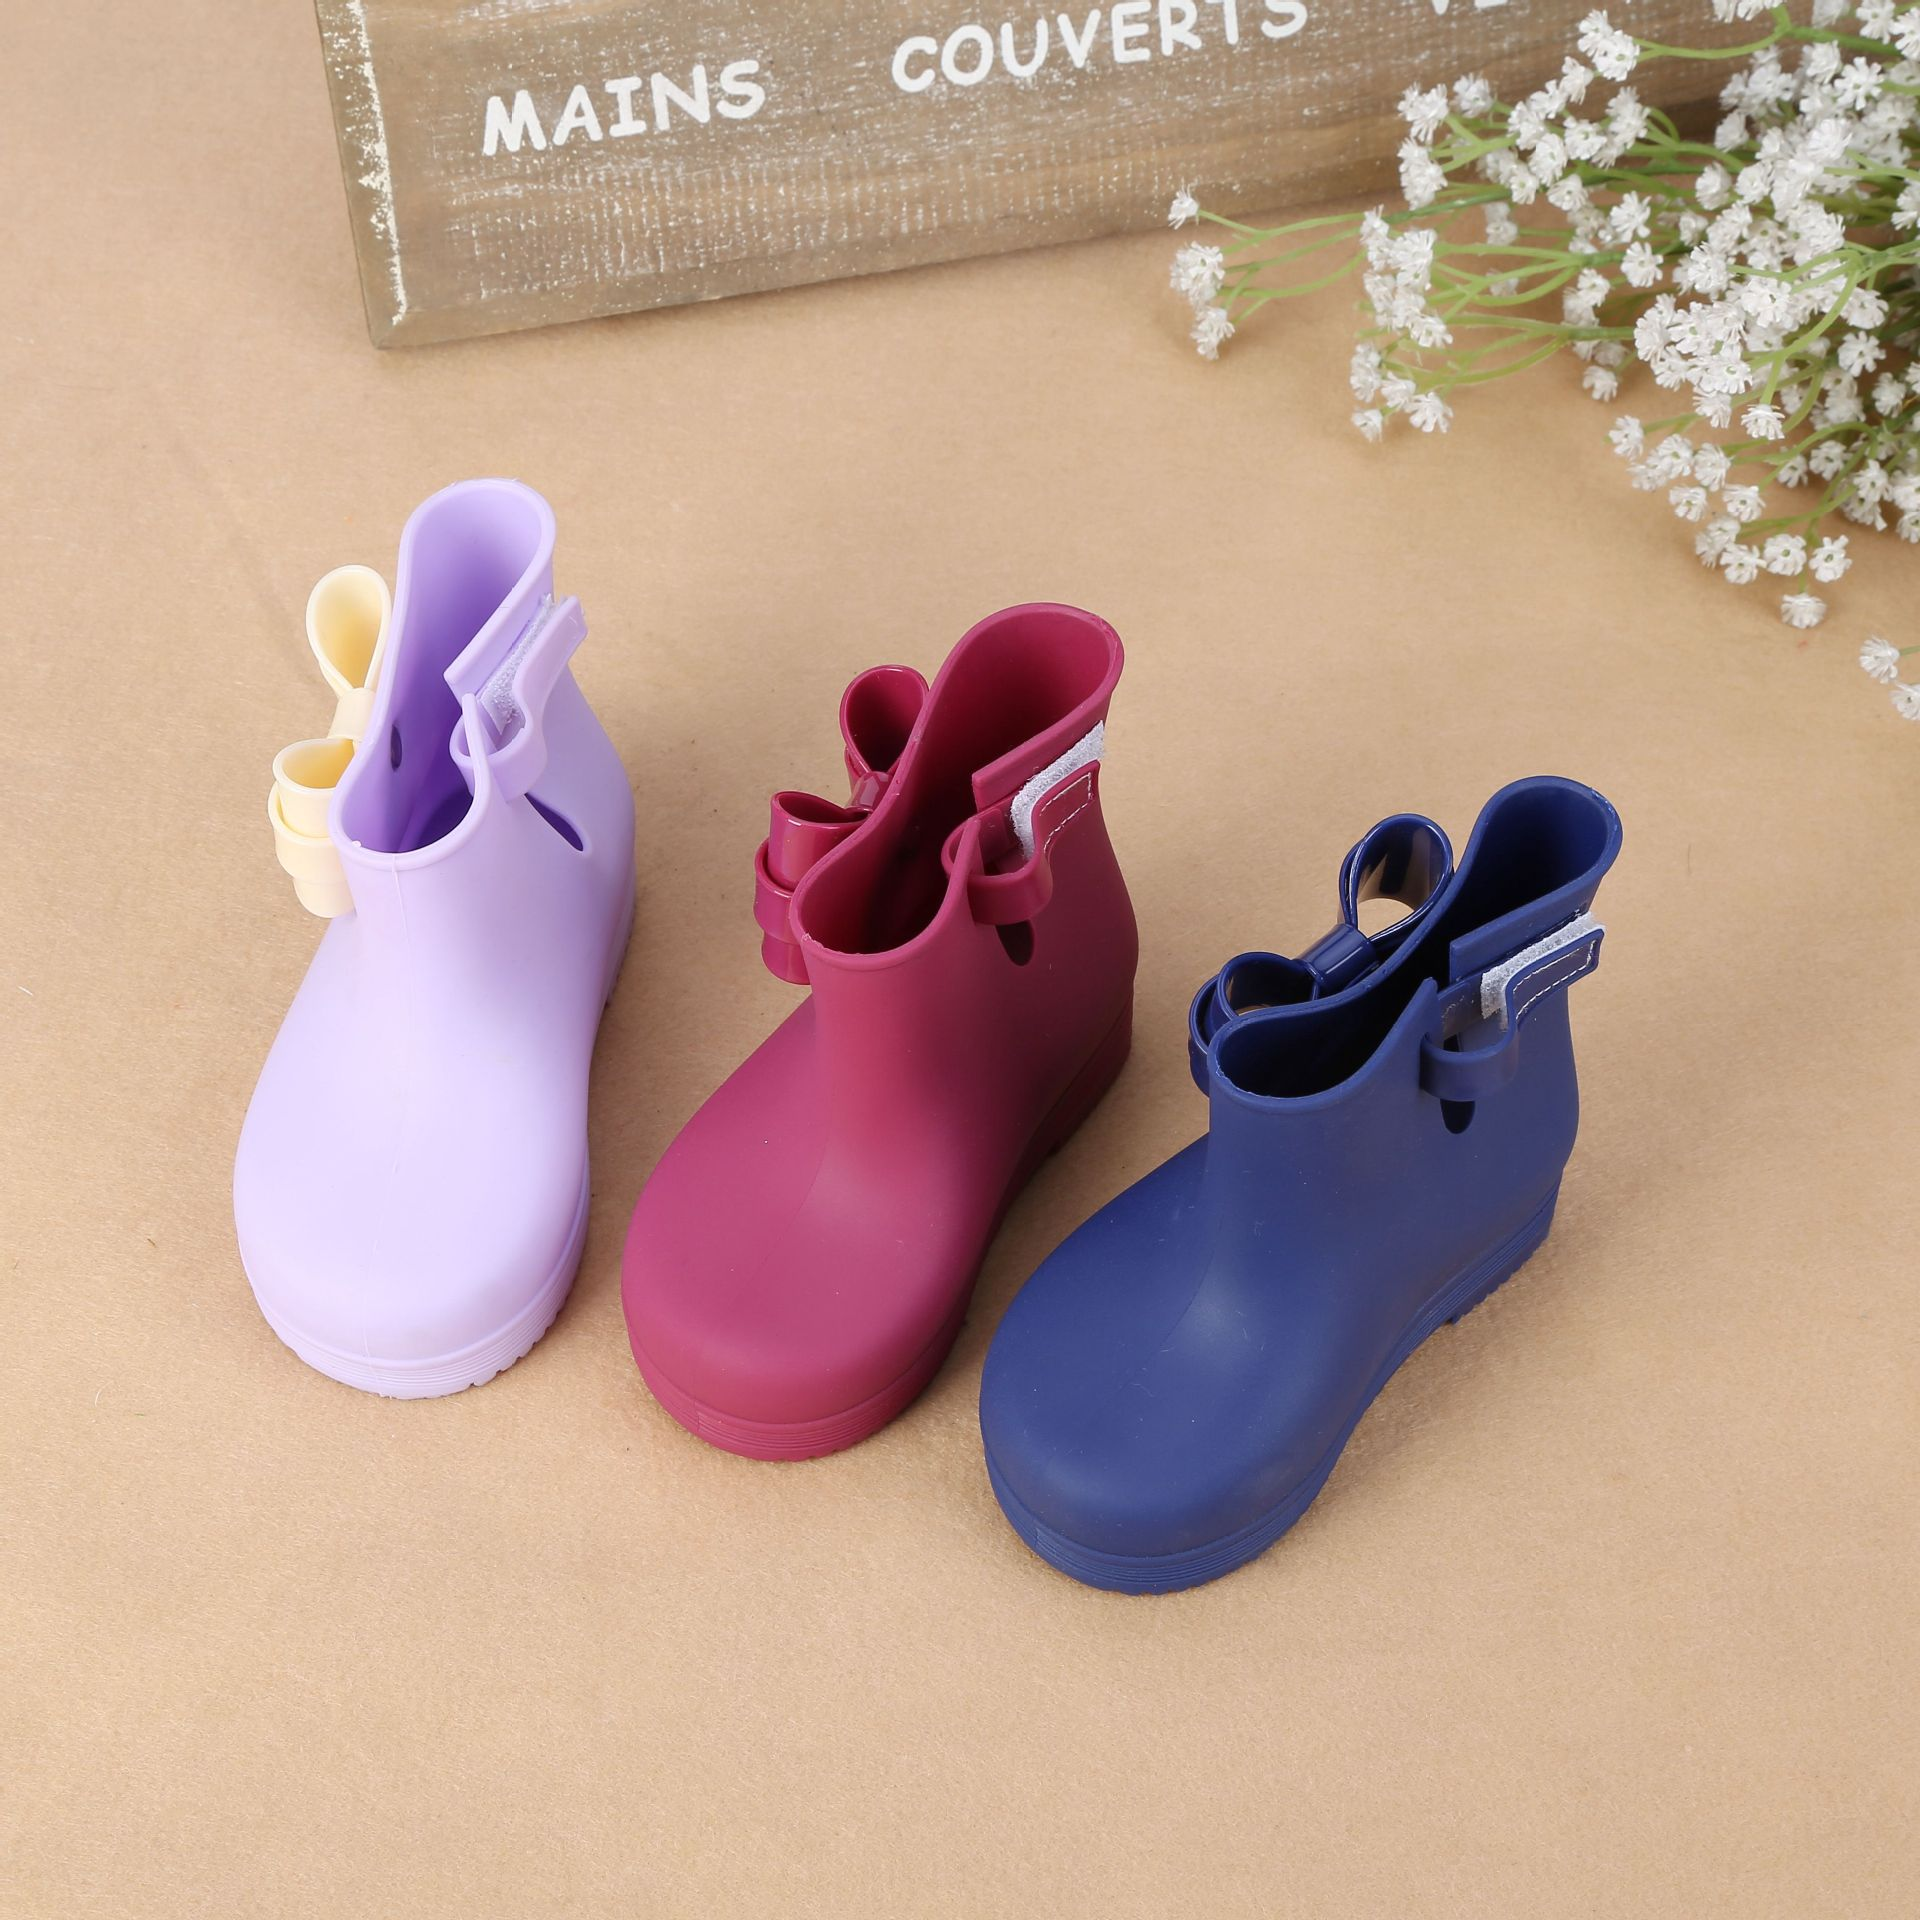 2017 Children Bow Boots Girls Candy Color Jelly Shoes Rain Boots Princess Shoes Anti Skid Soft